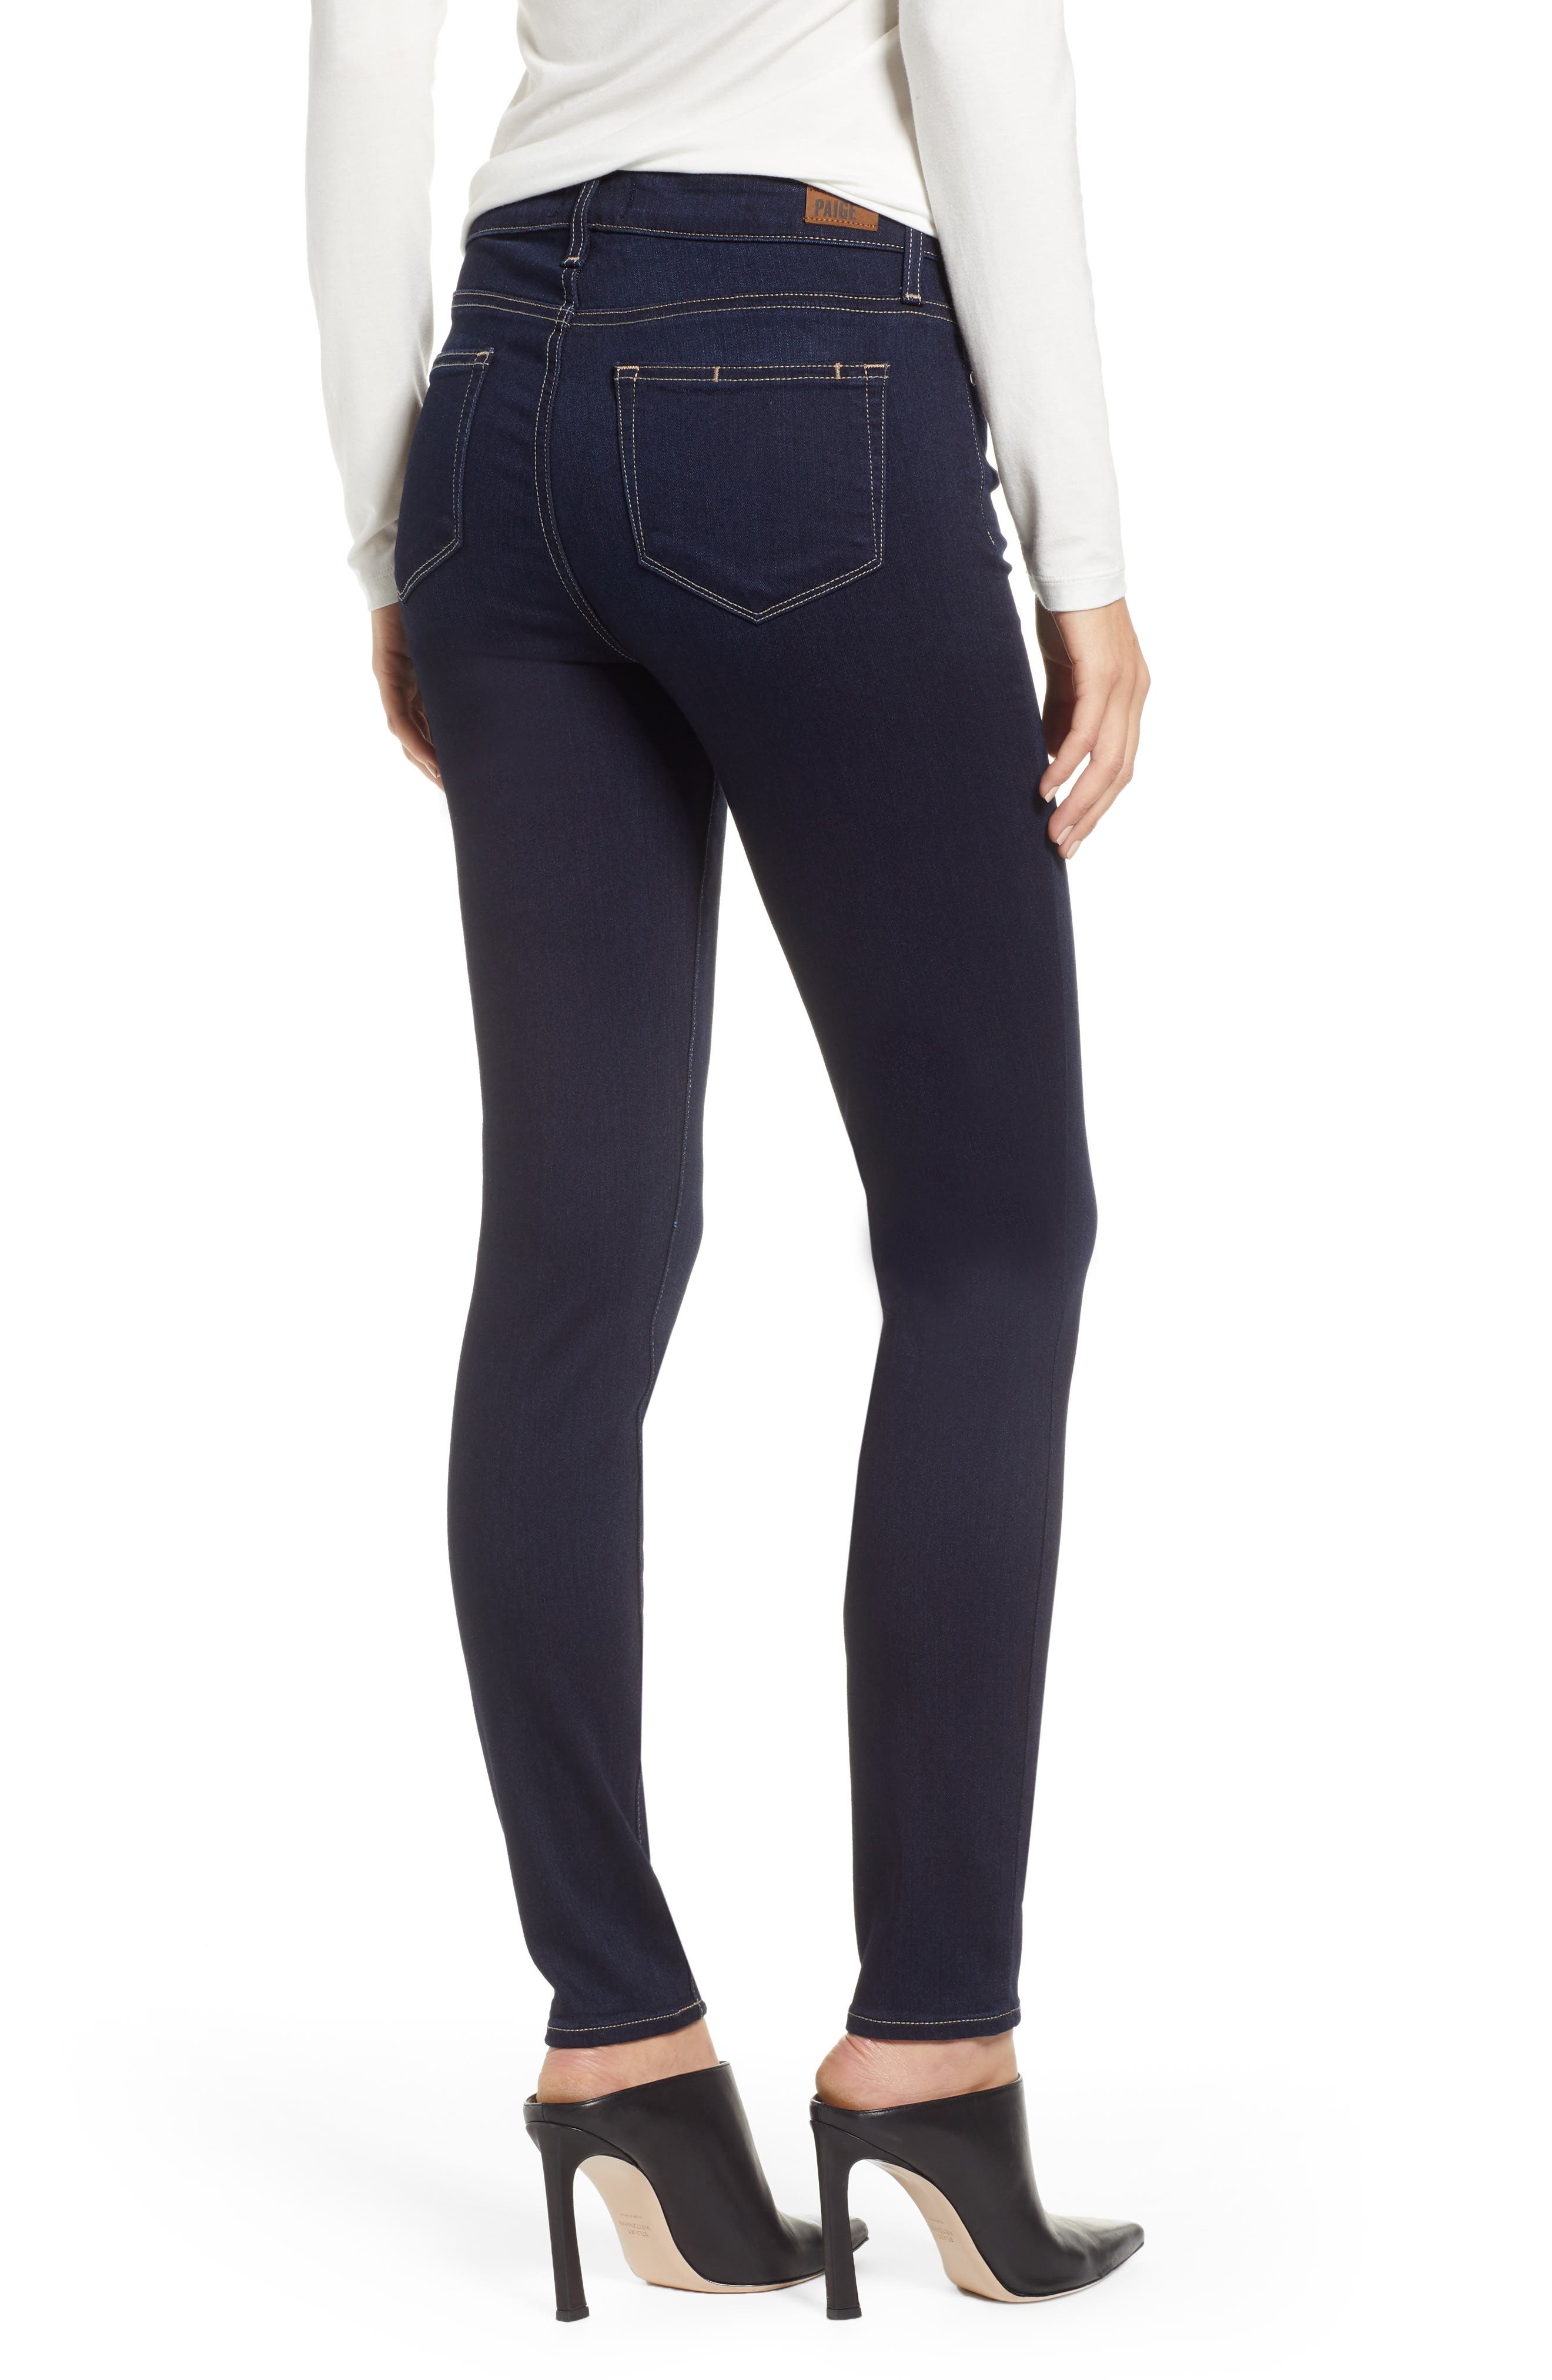 PAIGE,                             Transcend - Verdugo Ultra Skinny Jeans,                             Alternate thumbnail 2, color,                             ACADIA